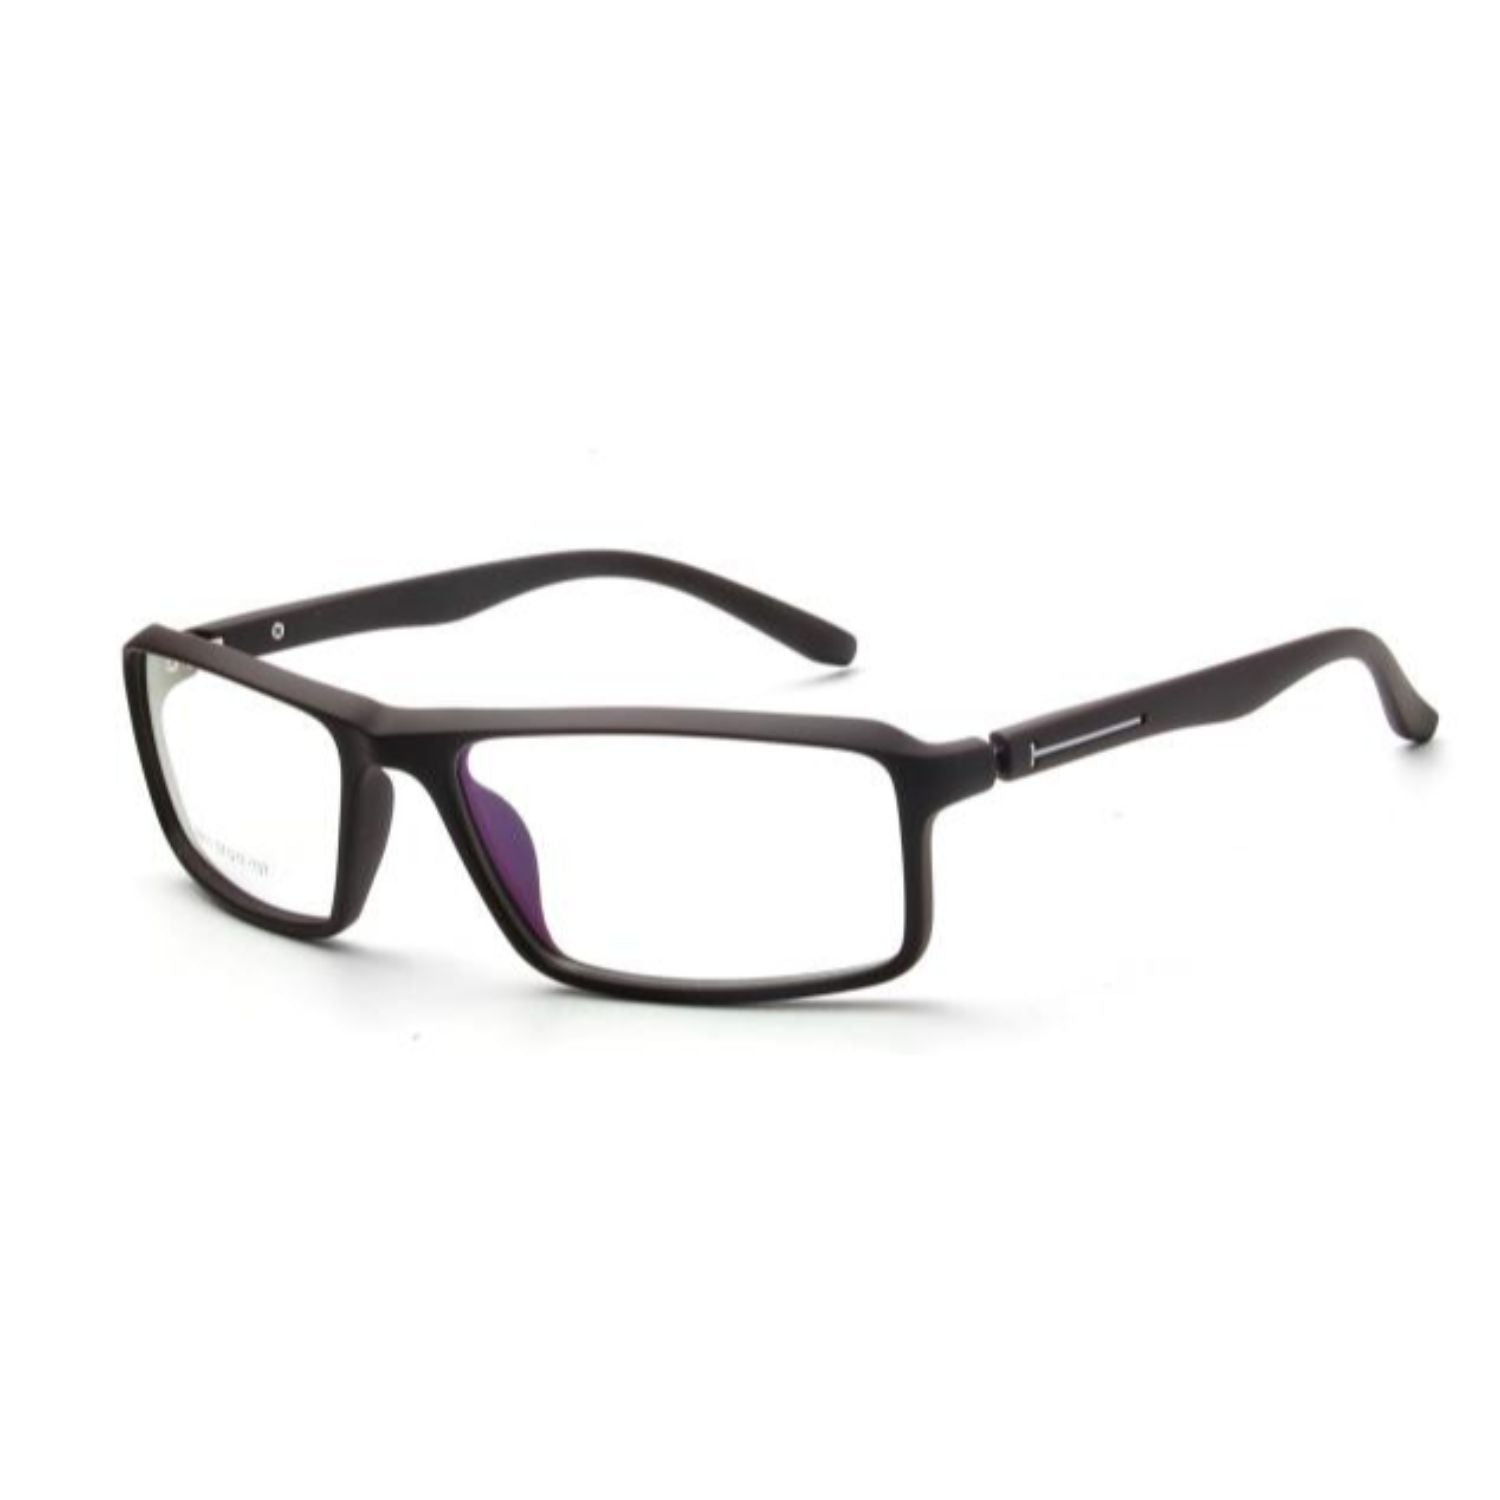 OTR8 - Men Sport Rectangle Eyeglasses